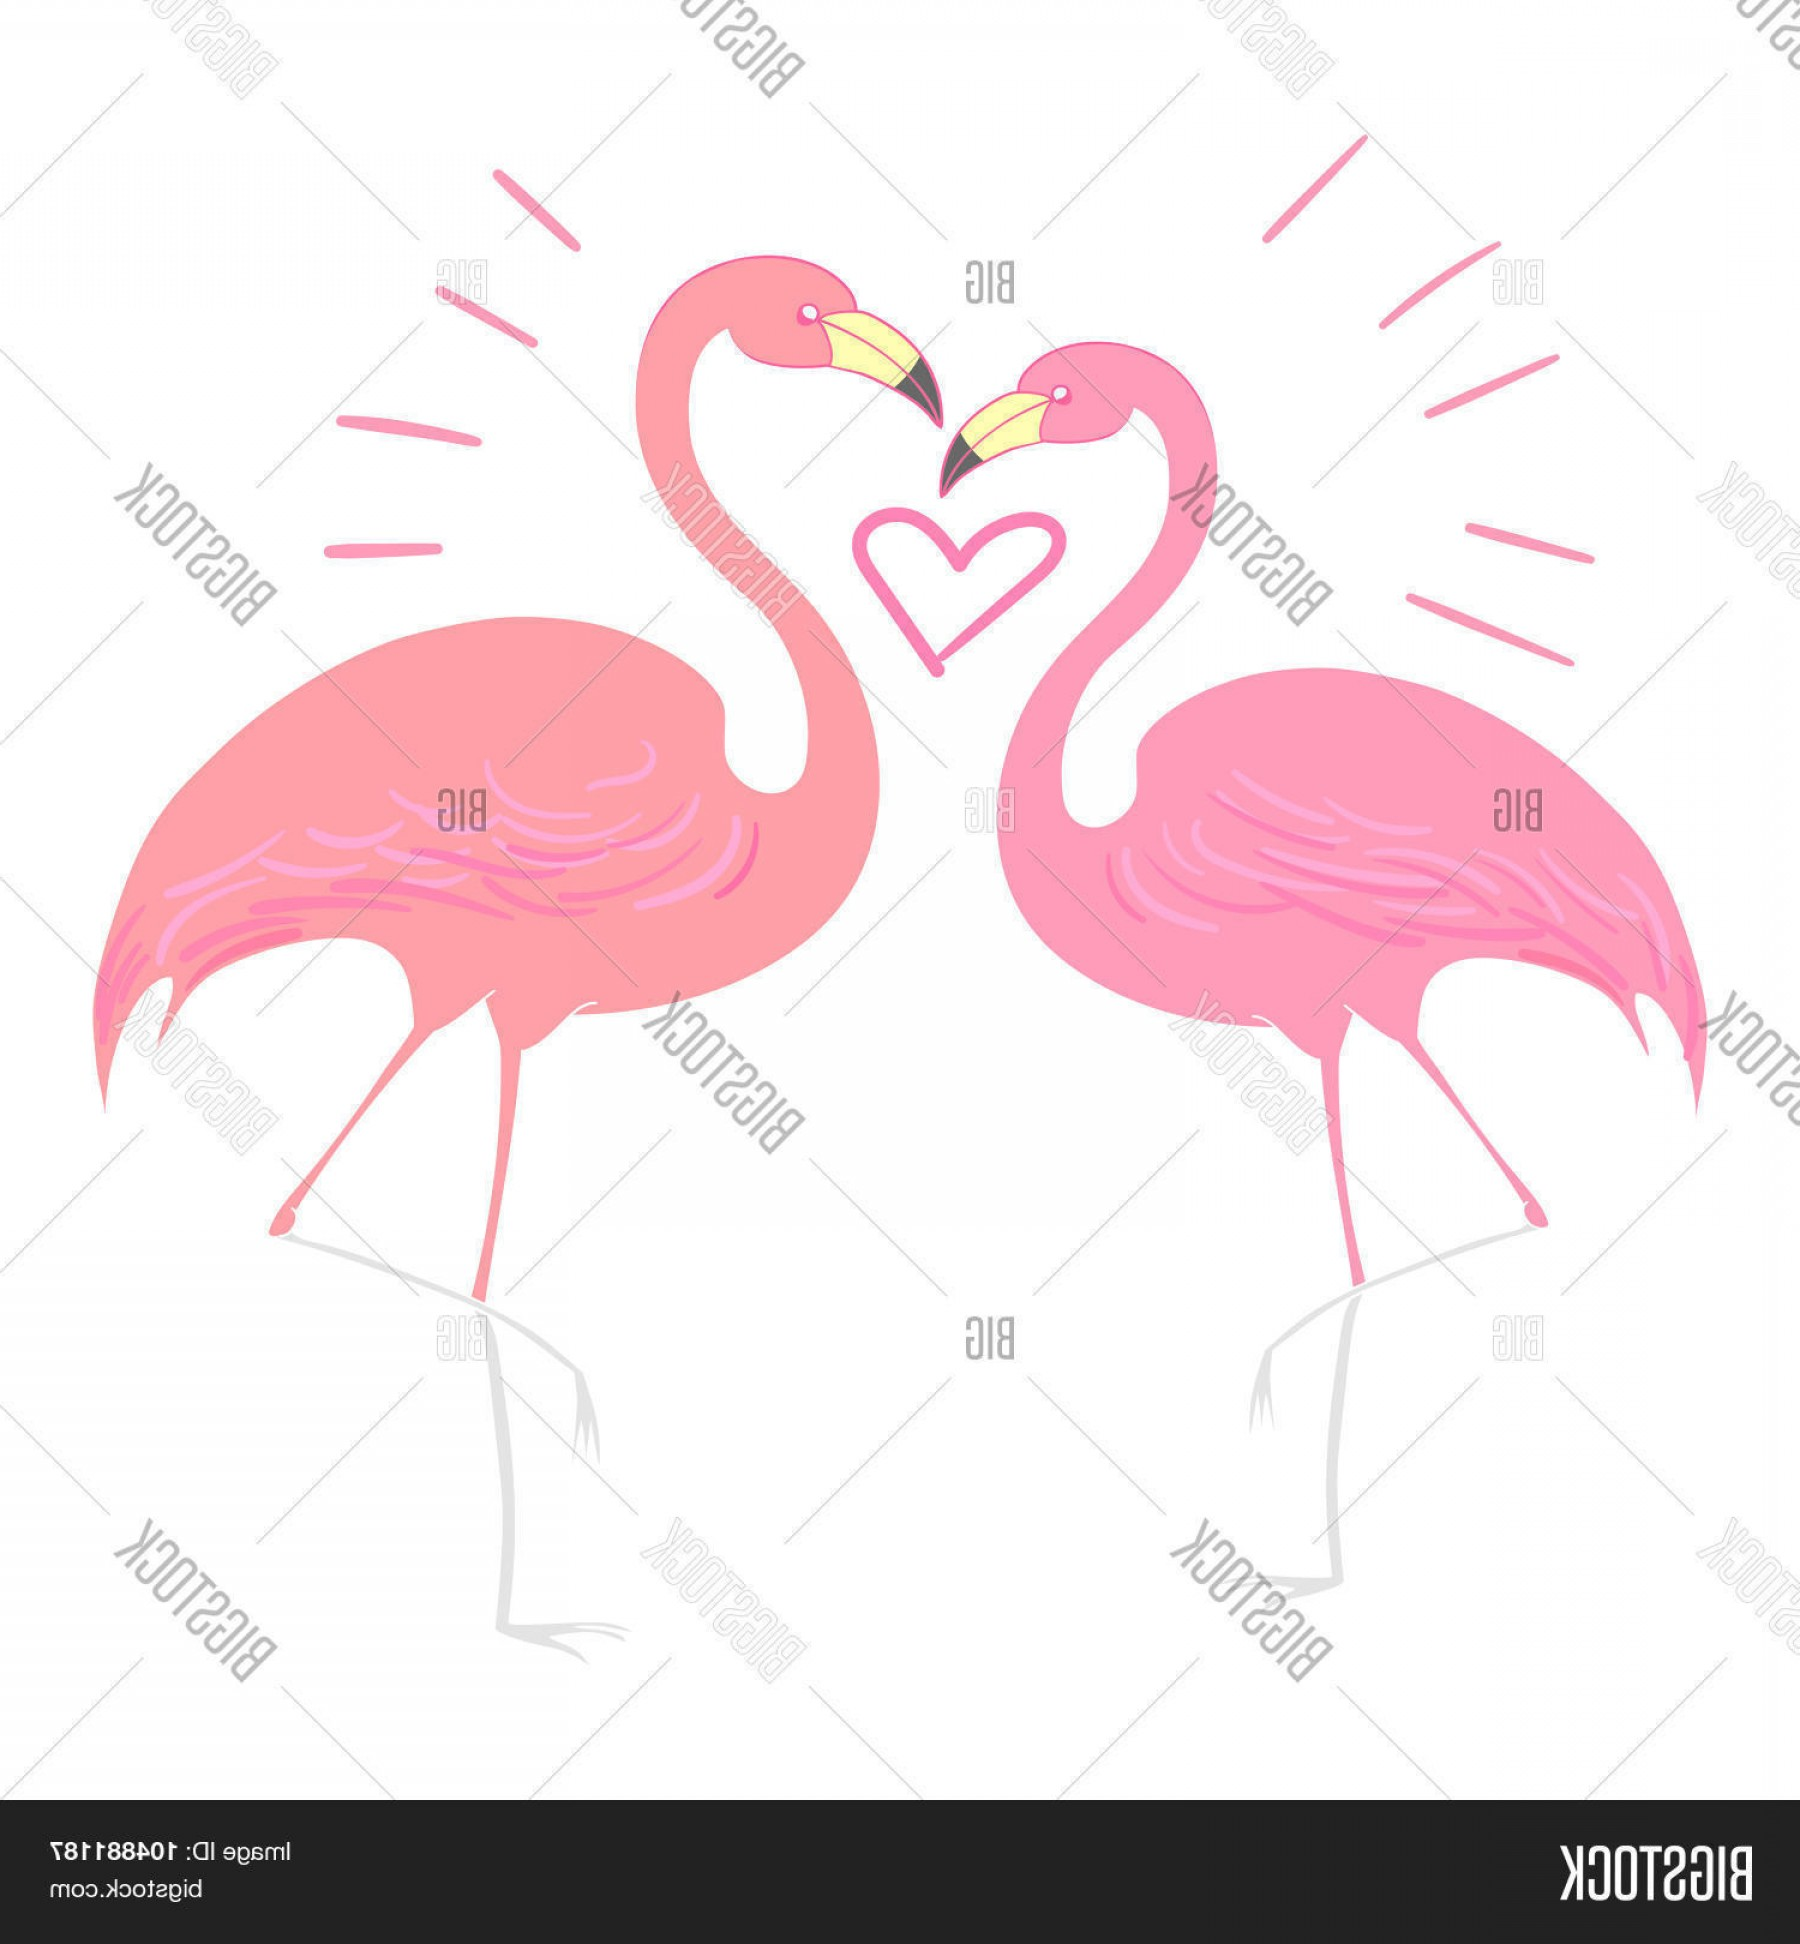 Hunting Heart Vector: Stock Vector Flamingo Bird With Heart Vector Illustration